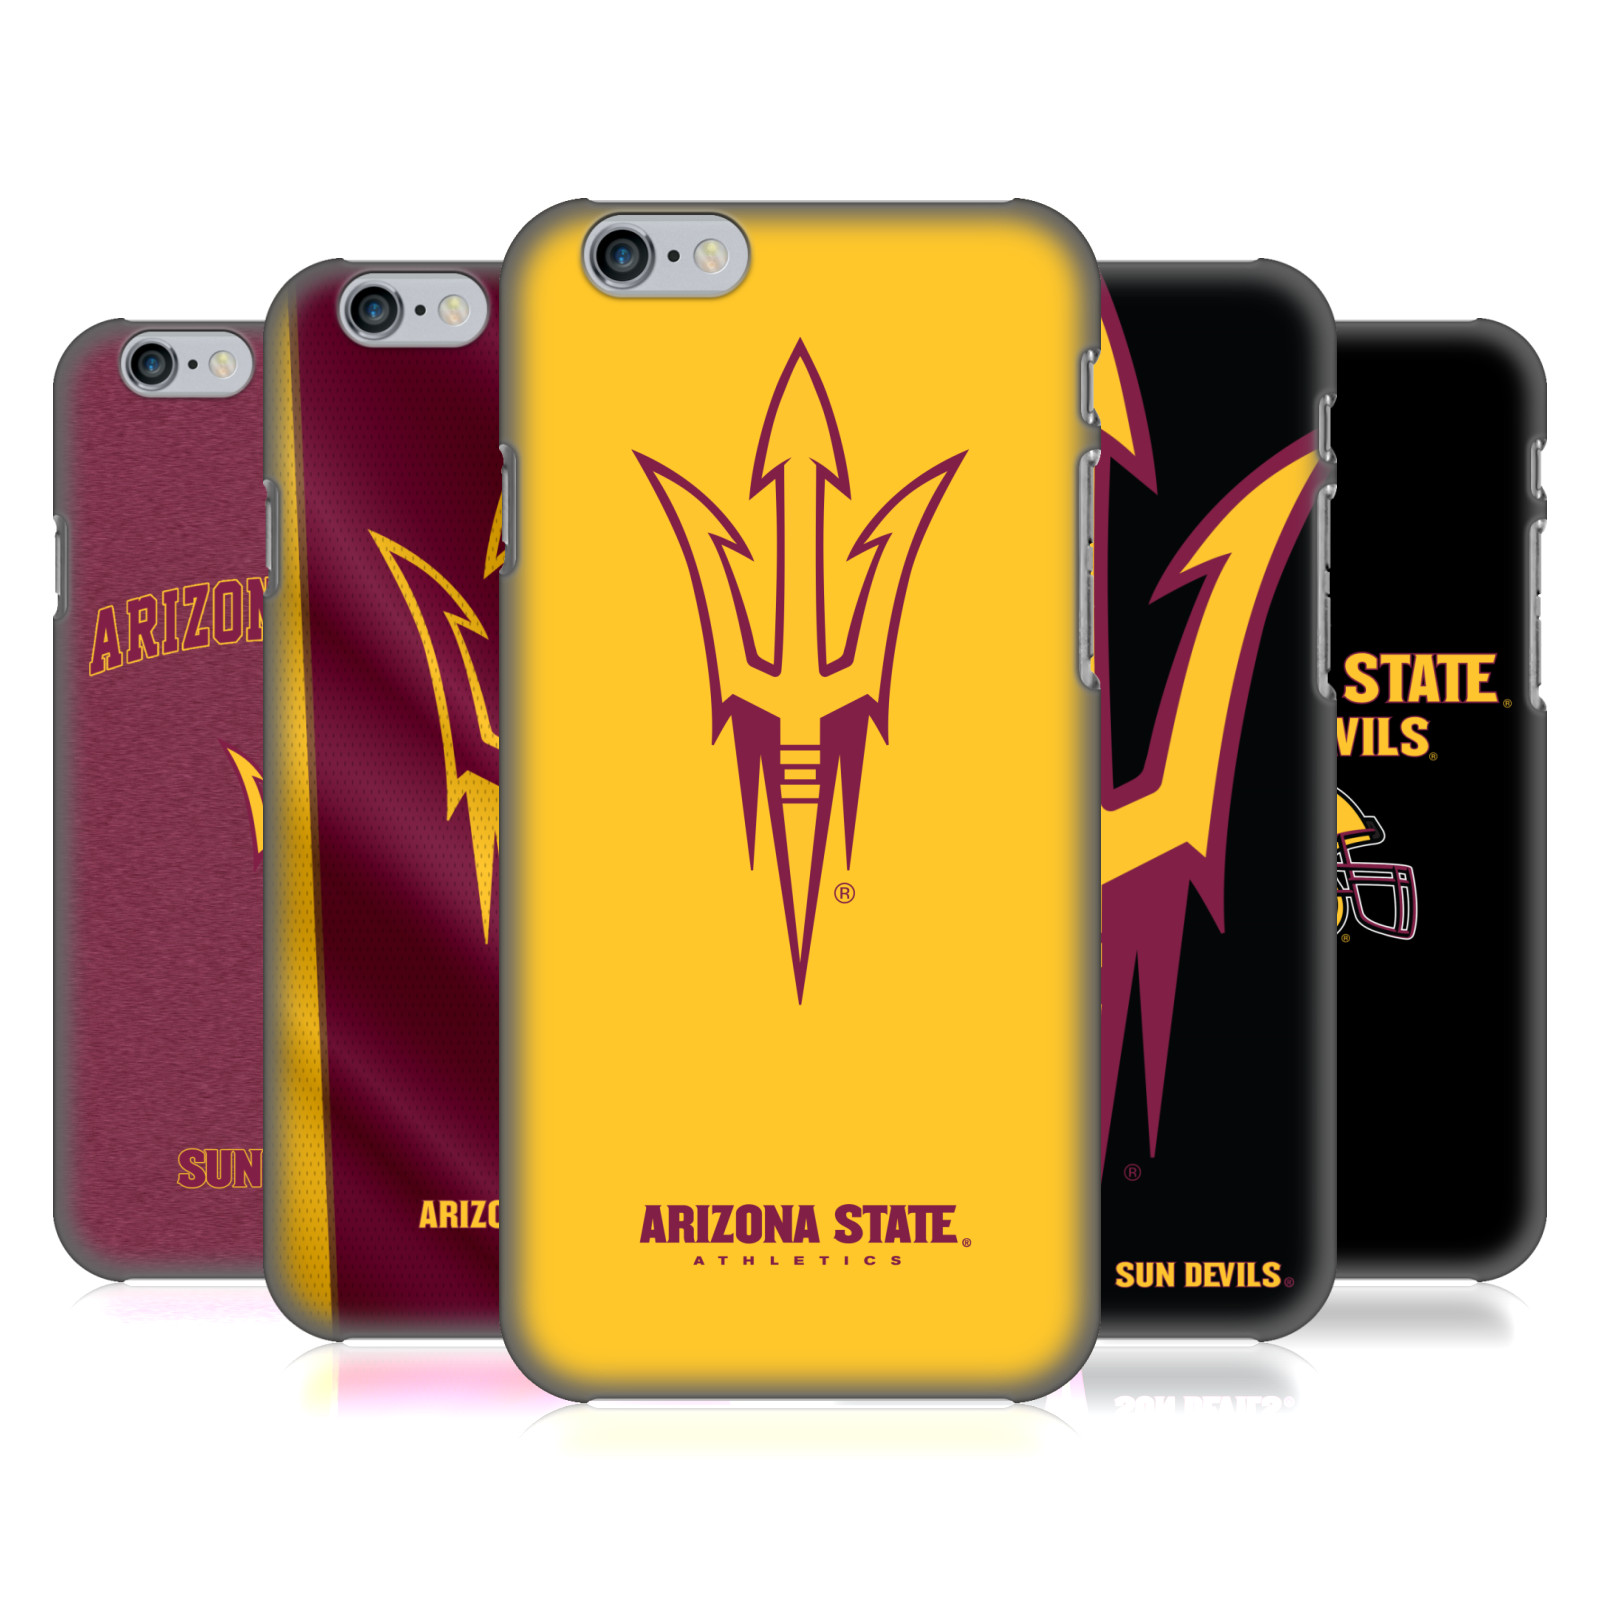 Arizona State University Phone and Tablet cases